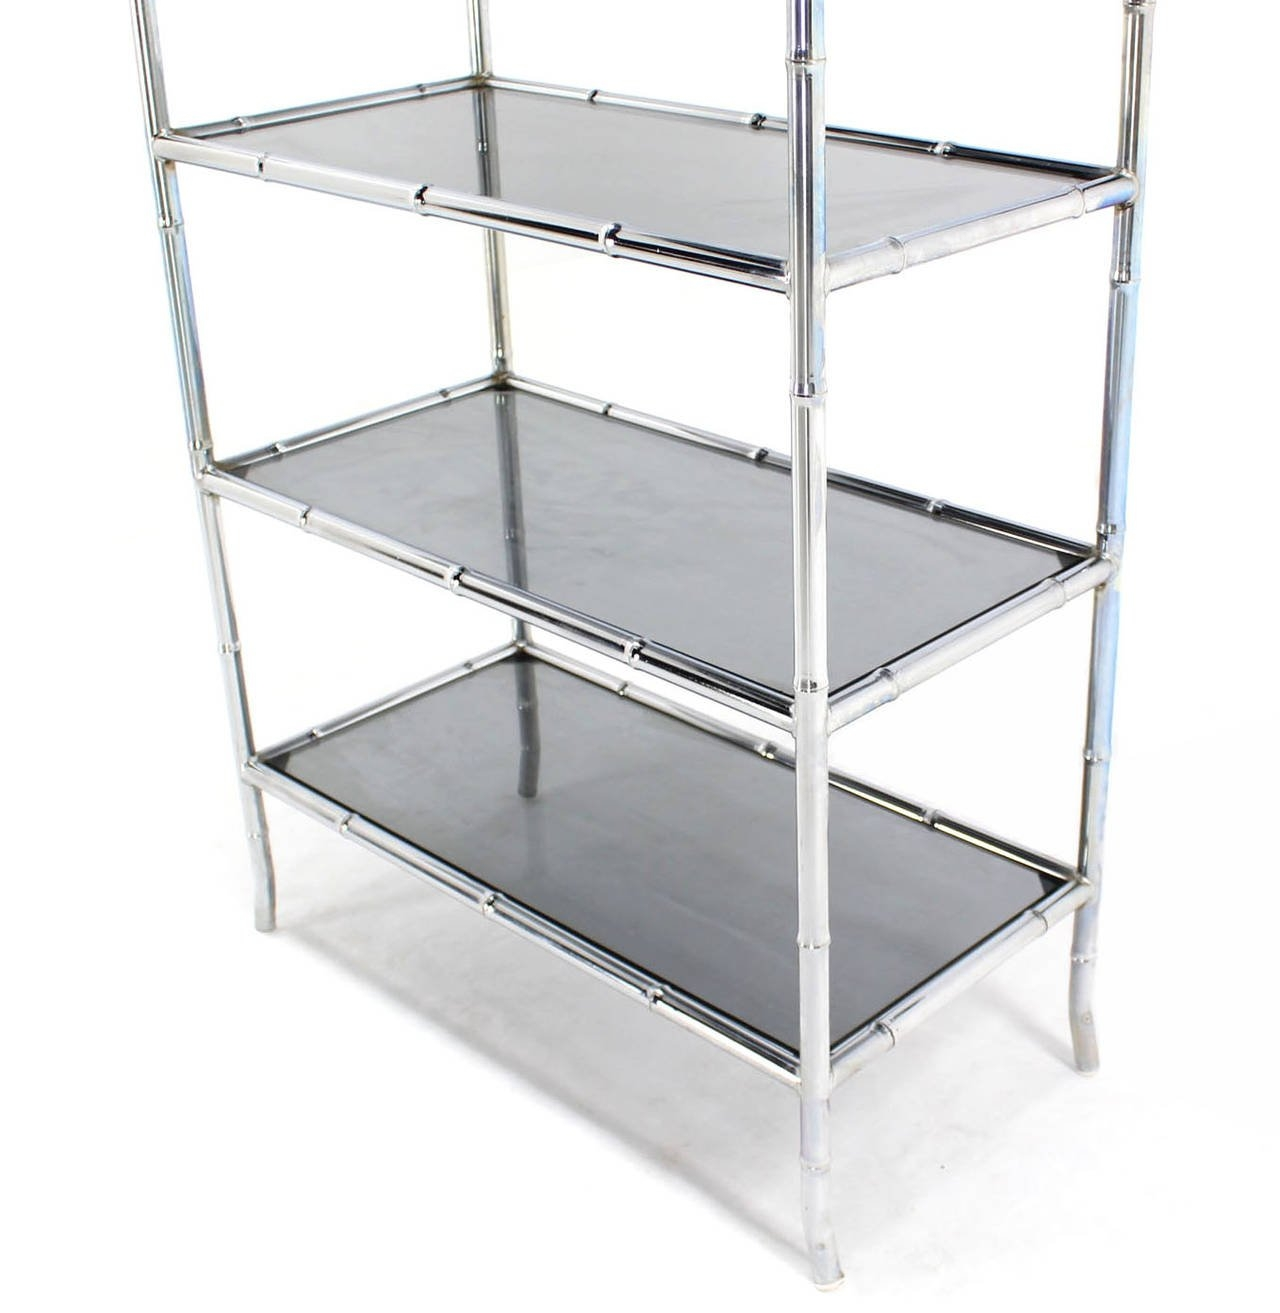 Chrome Faux Bamboo Etagere Unit With Smoked Glass Shelves At 1stdibs Throughout Smoked Glass Shelf (View 6 of 12)